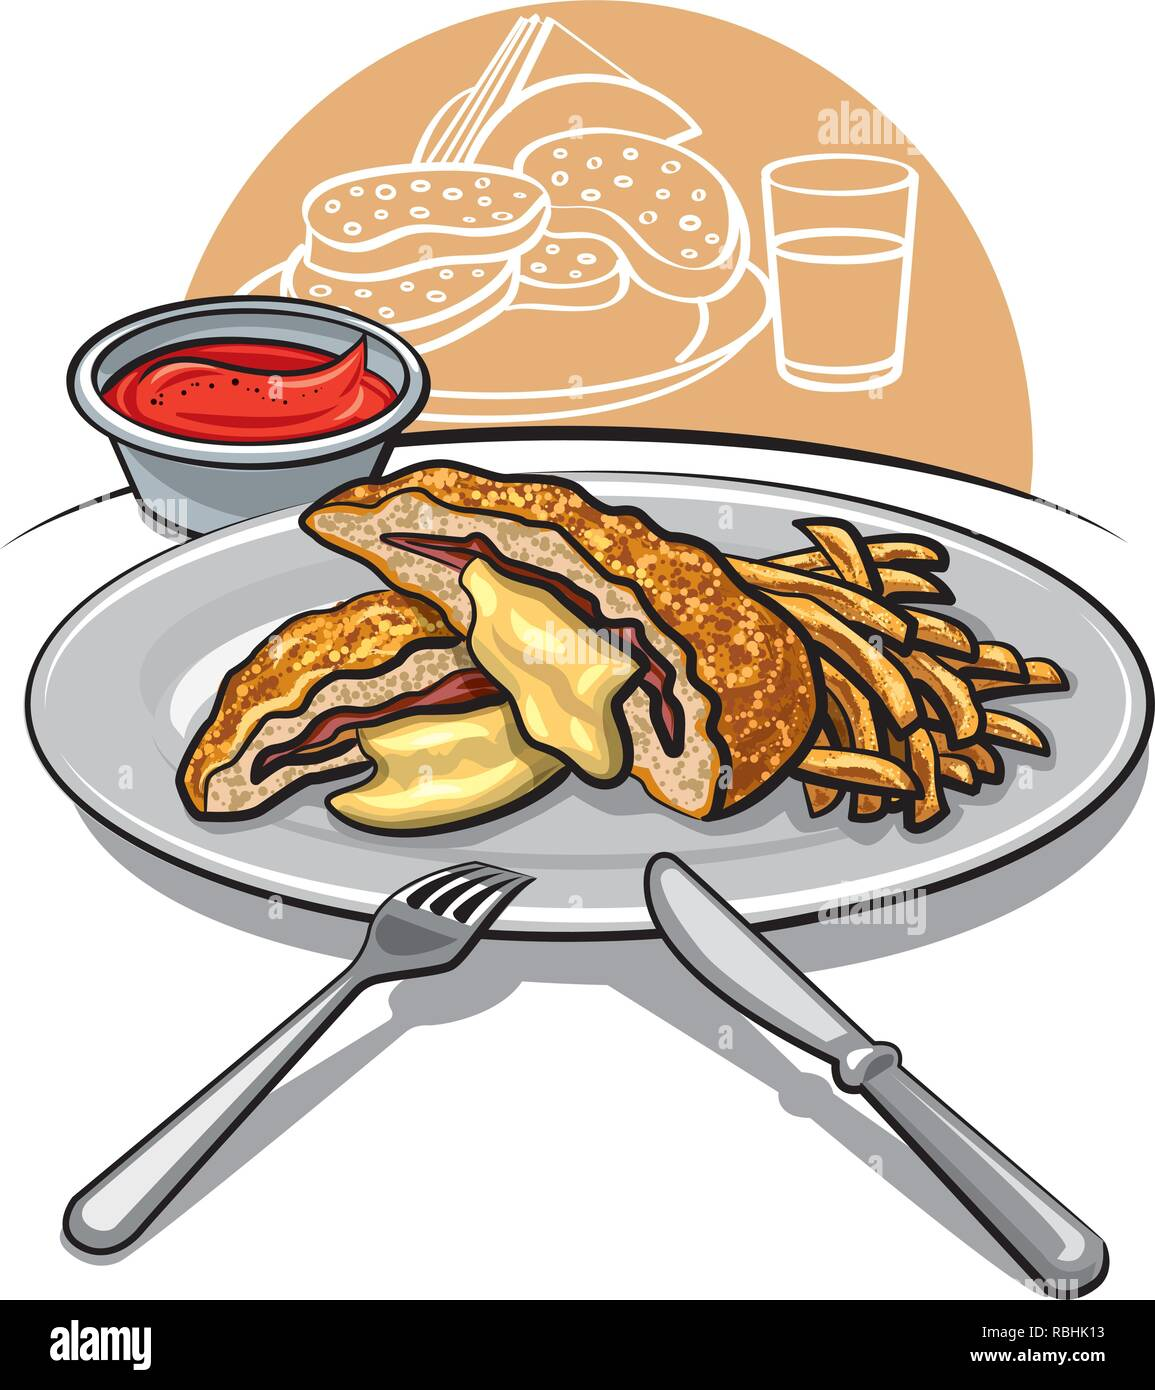 illustration of escalope with fries on a plate with tomato sauce - Stock Vector